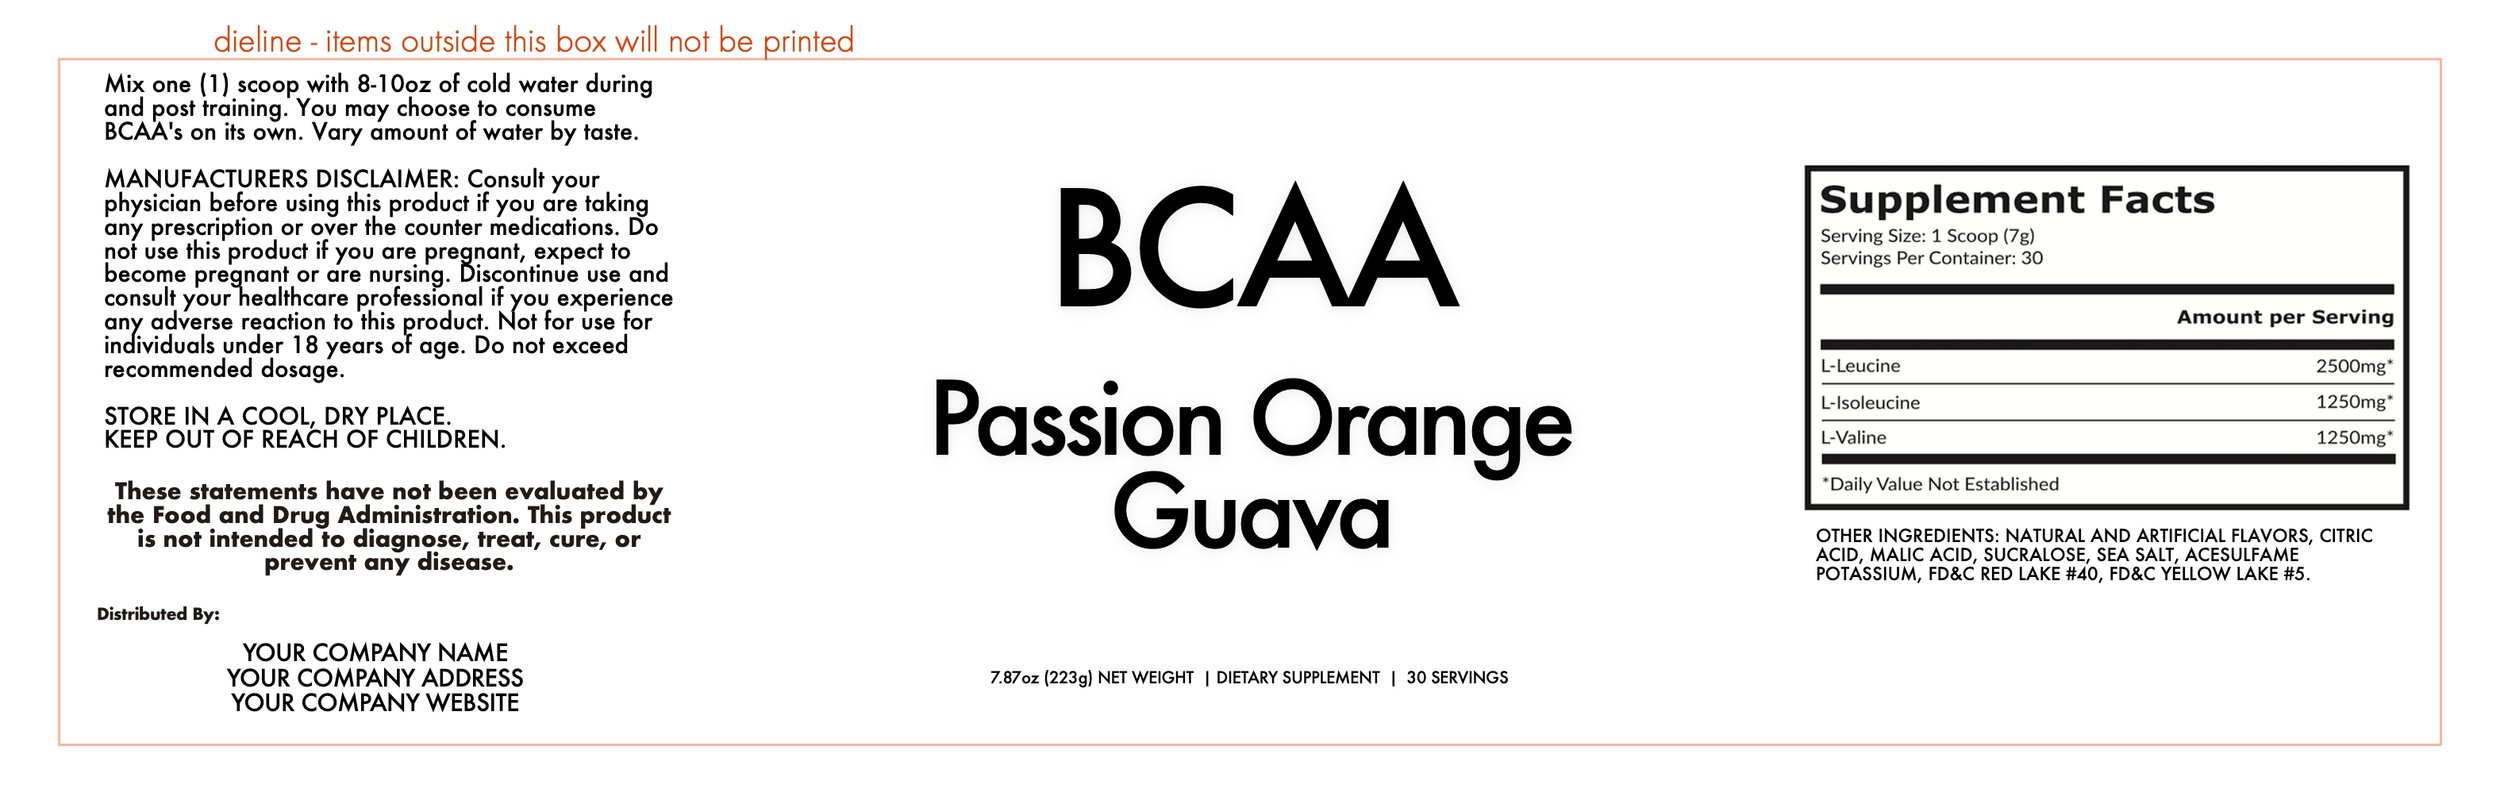 IMN BCAA Passion Orange Guava 10x2.875.jpg